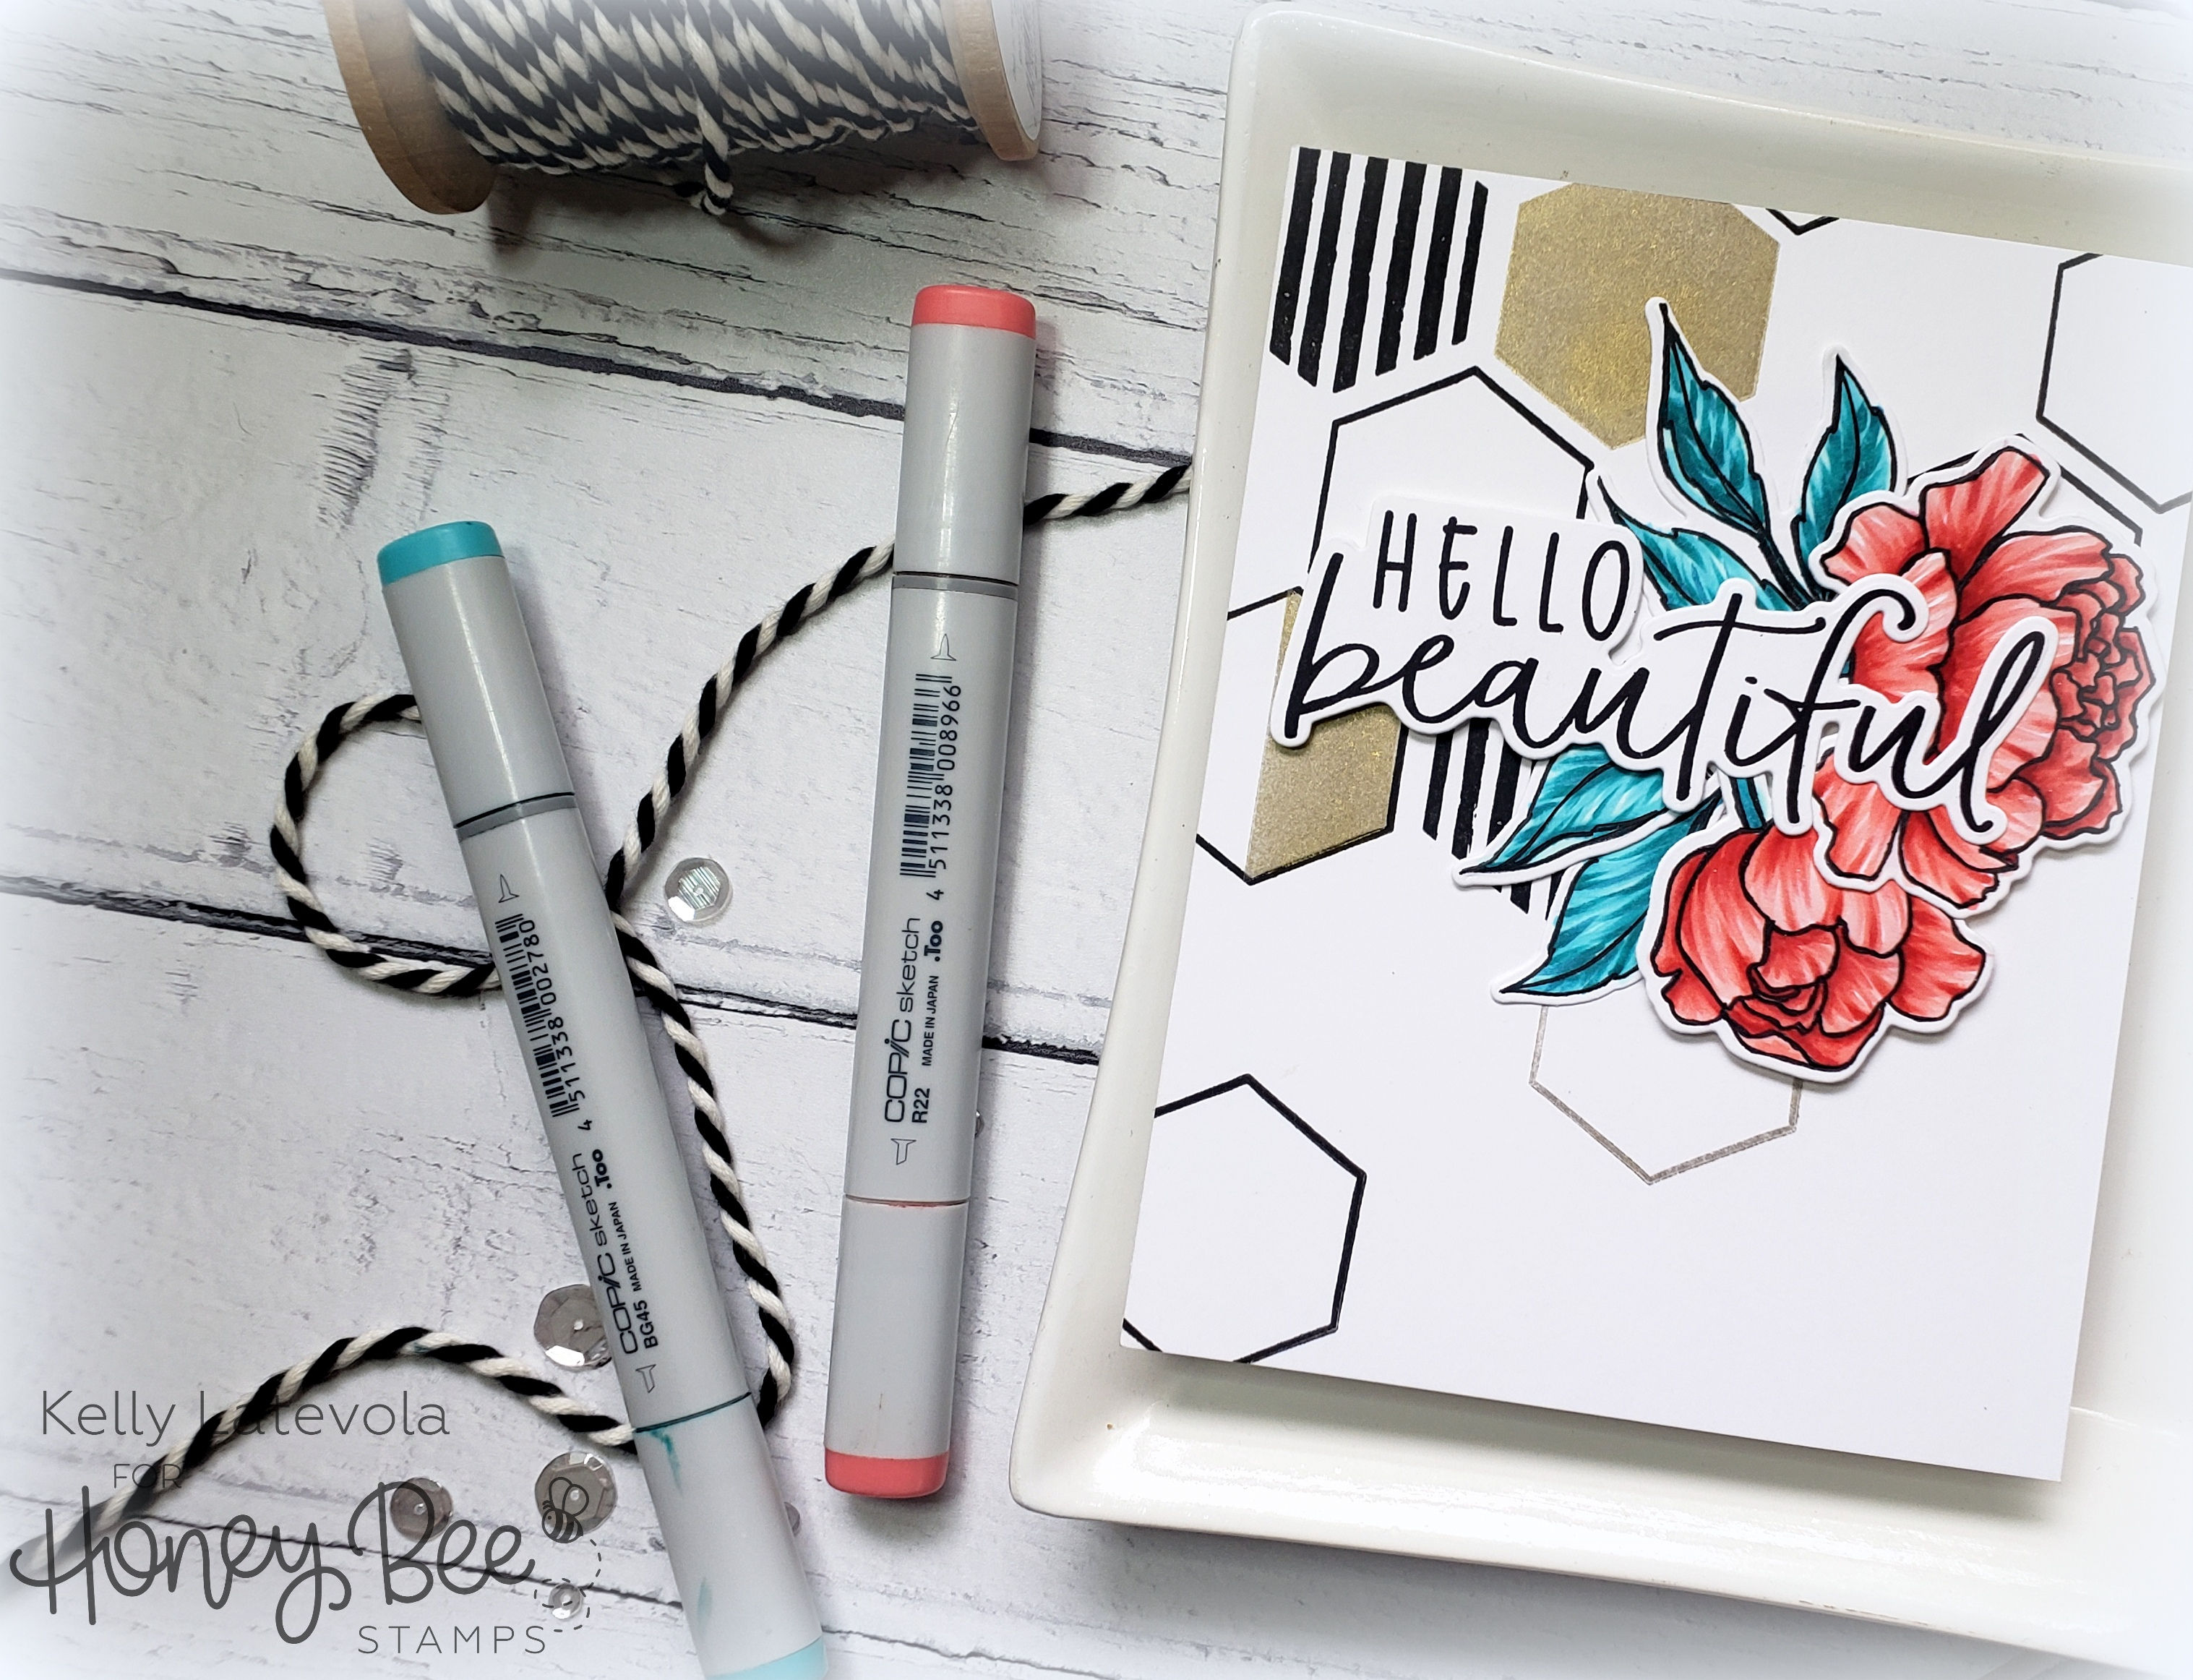 Spring Peony + Hexagon Patterns with Kelly Latevola